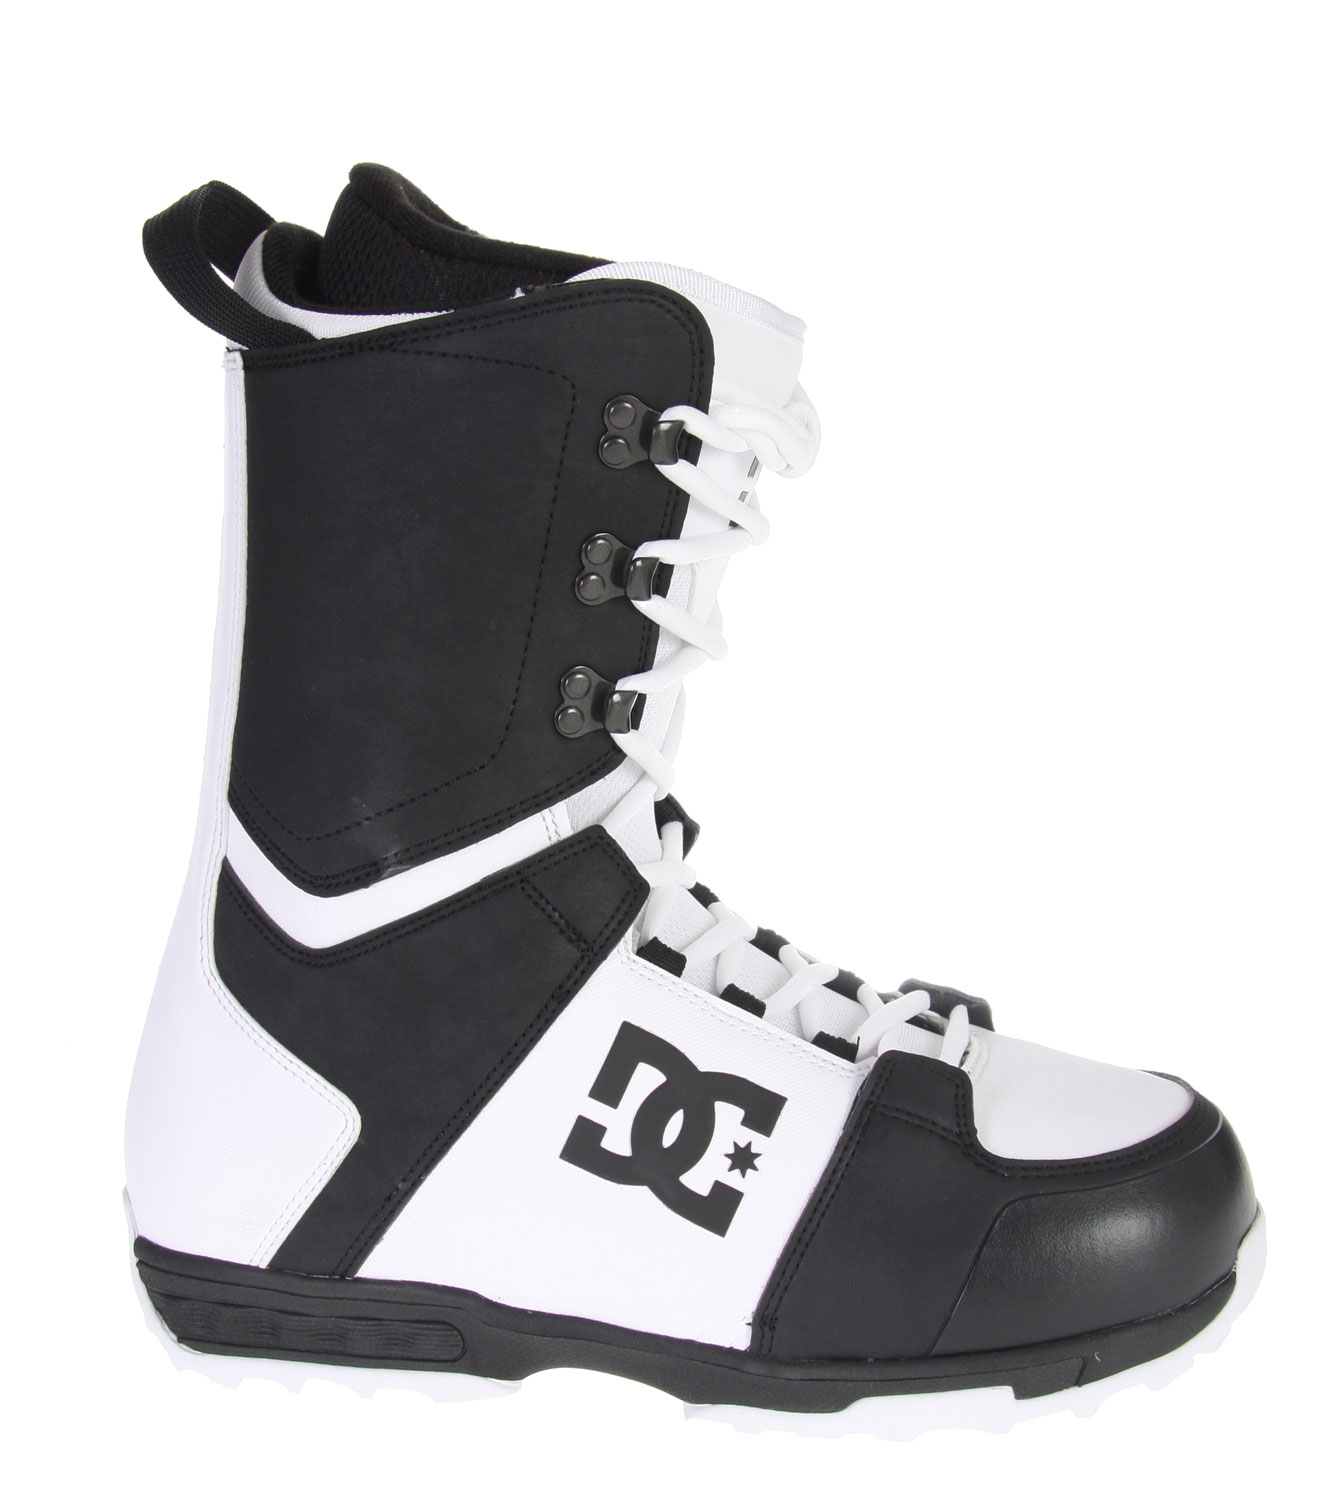 Snowboard A combination of DC influences. Rider inspired. Skate influenced. Performance driven. The Rogan maintains the right amount of flex, comfort, and support to allow riders to hit all spots on the mountain nomatter what the condition.Key Features of The DC Rogan Snowboard Boots: Water Resistant Synthetic Leather Upper Traditional Lace Ergonomically Engineered 3D Tongue Articulated Upper Cuff Internal Ankle Harness Welded Backstay Molded EVA Midsole Functional Sole Design Flex: 6 - $86.95